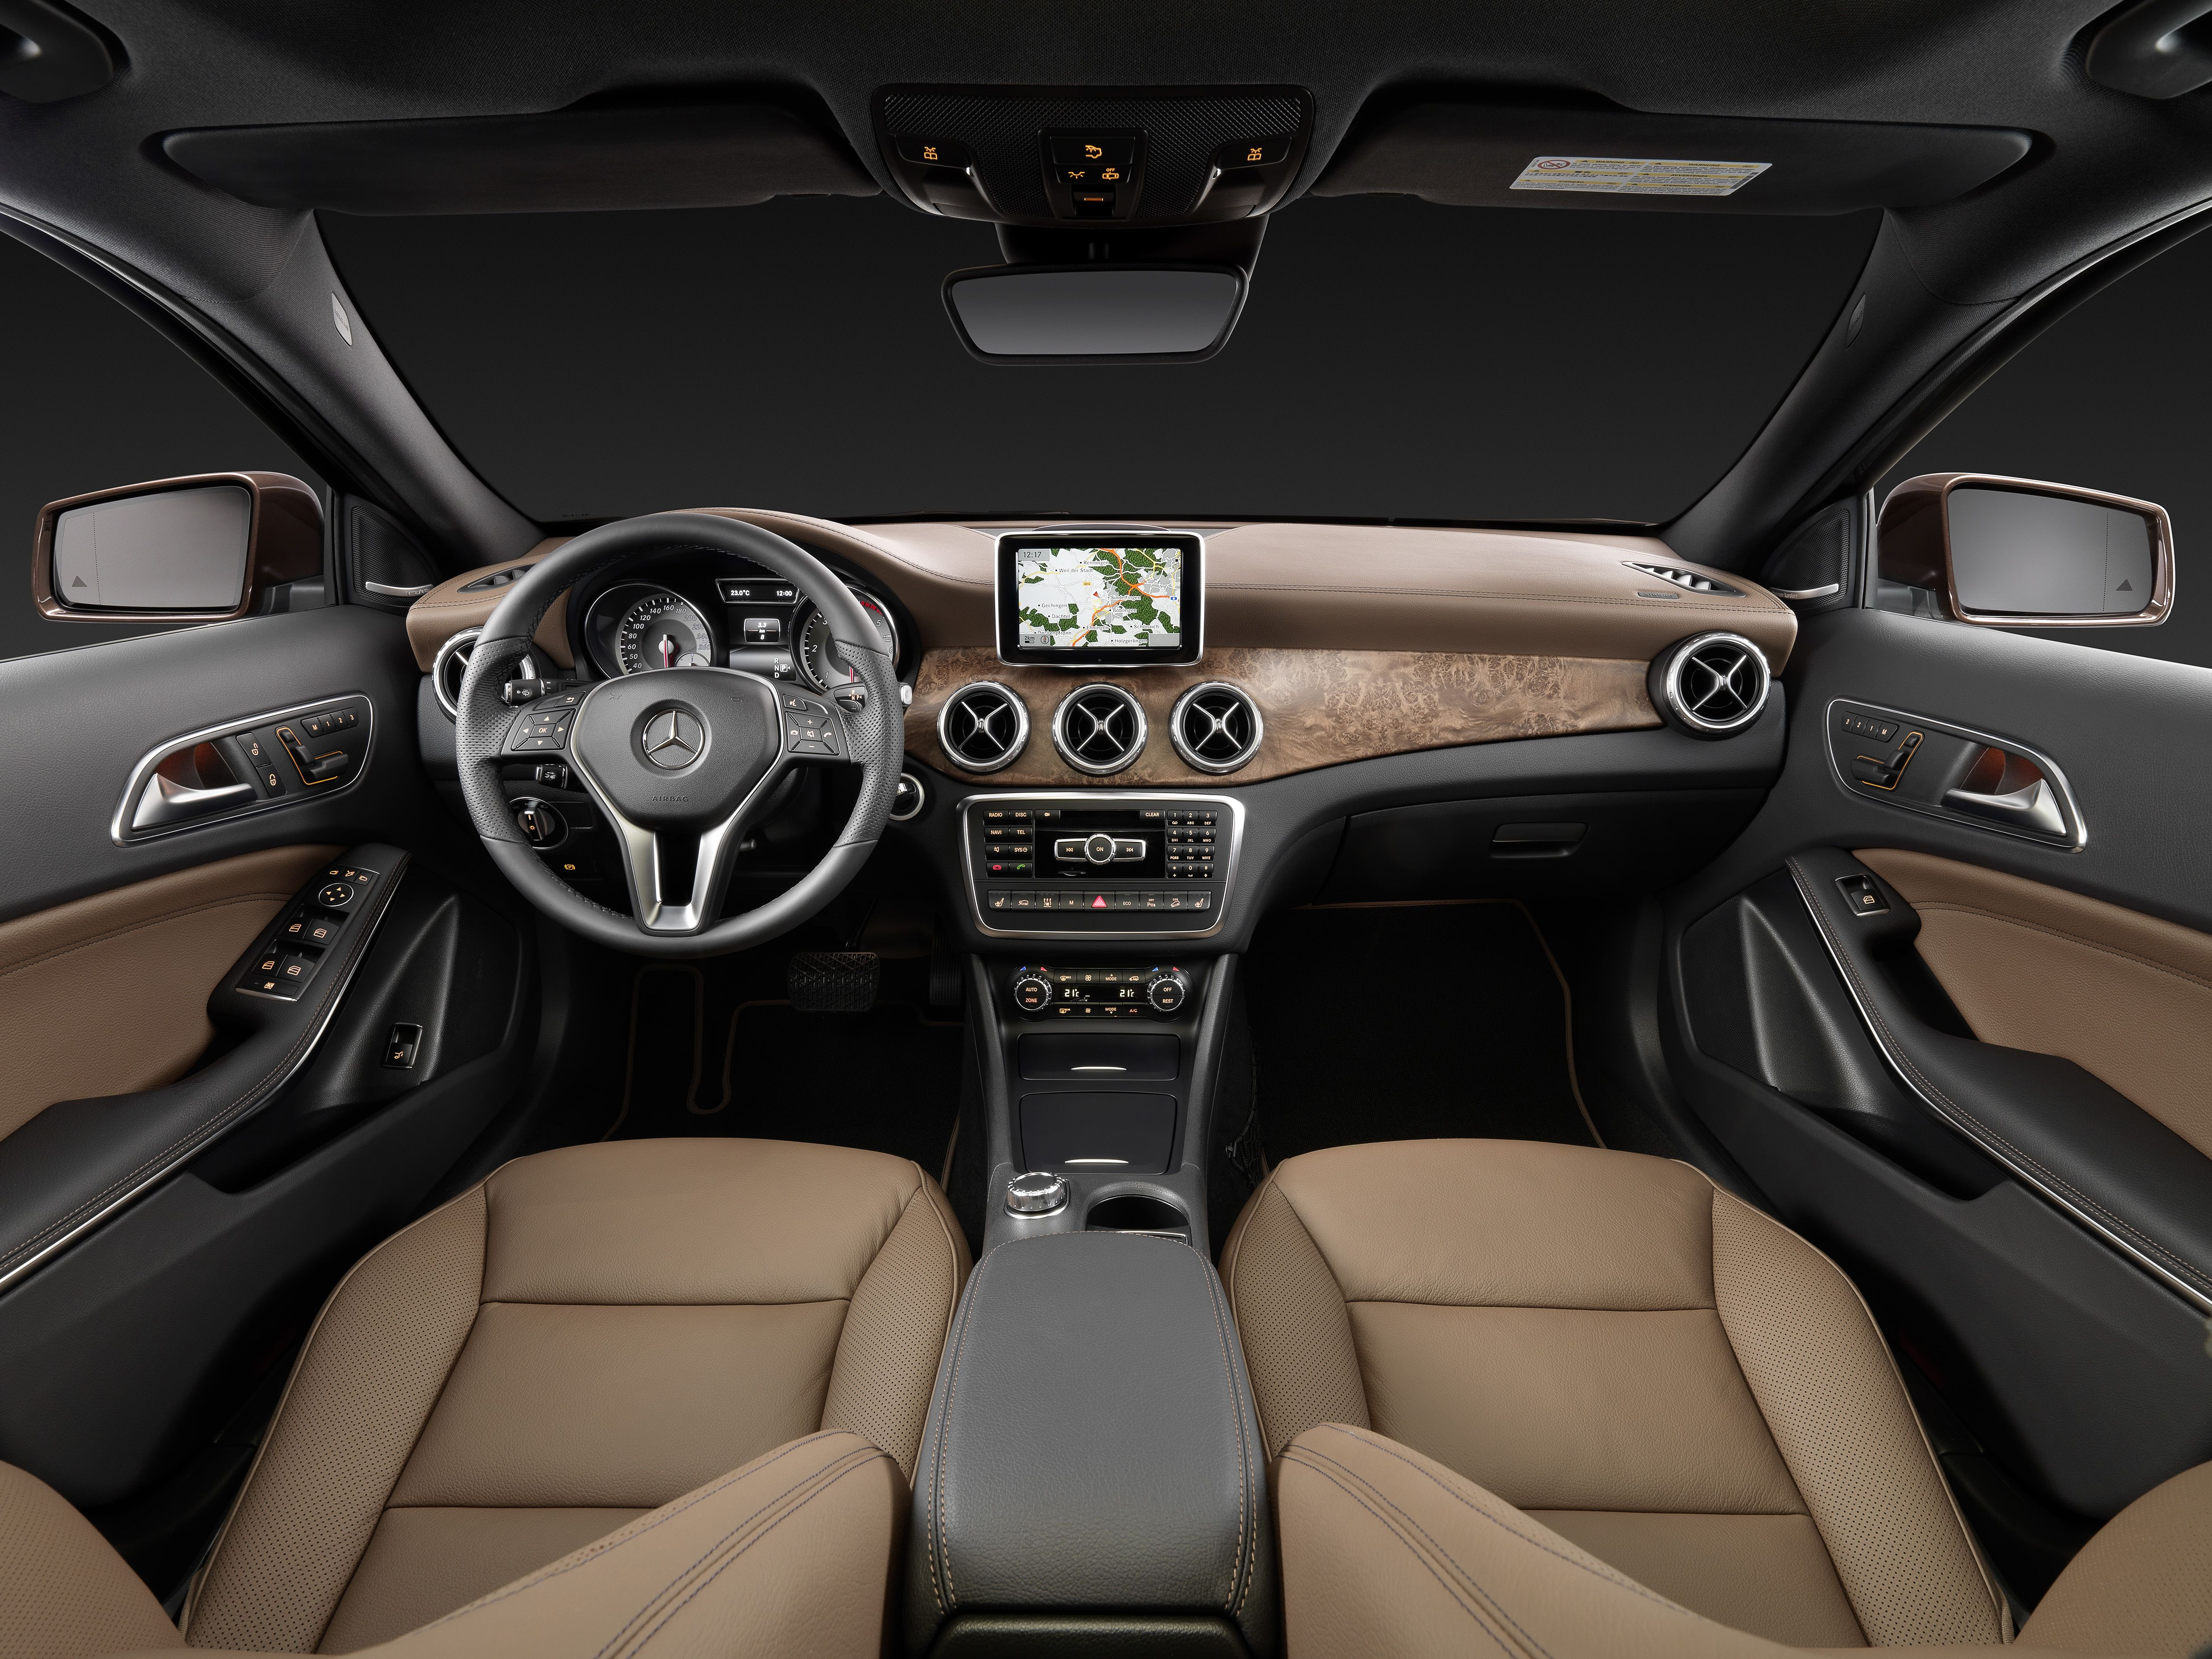 New Mercedesbenz Gla Thebestornothing Interior With Images